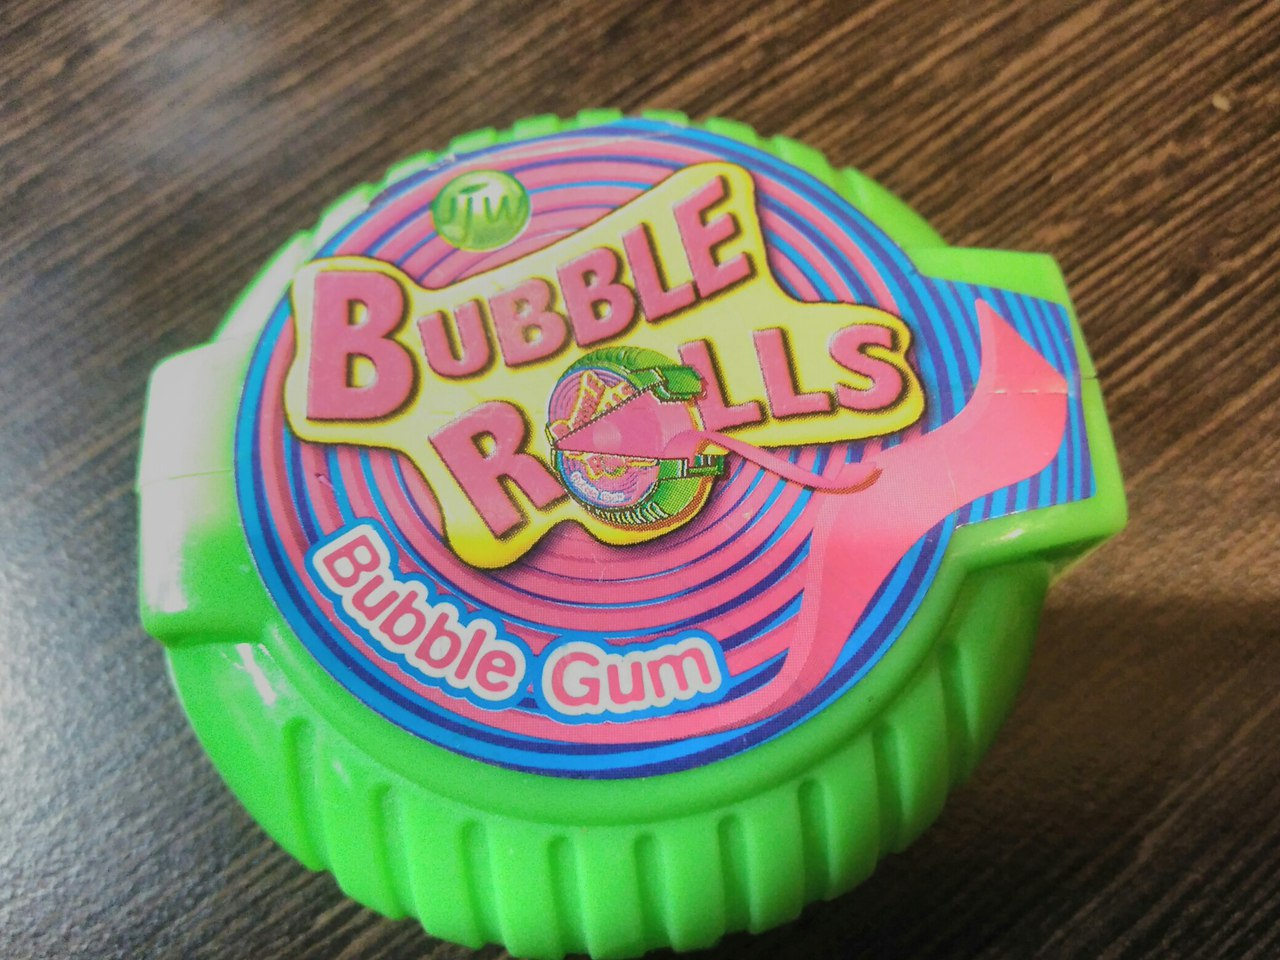 Bubble Rolls bubble gum 18 g apple